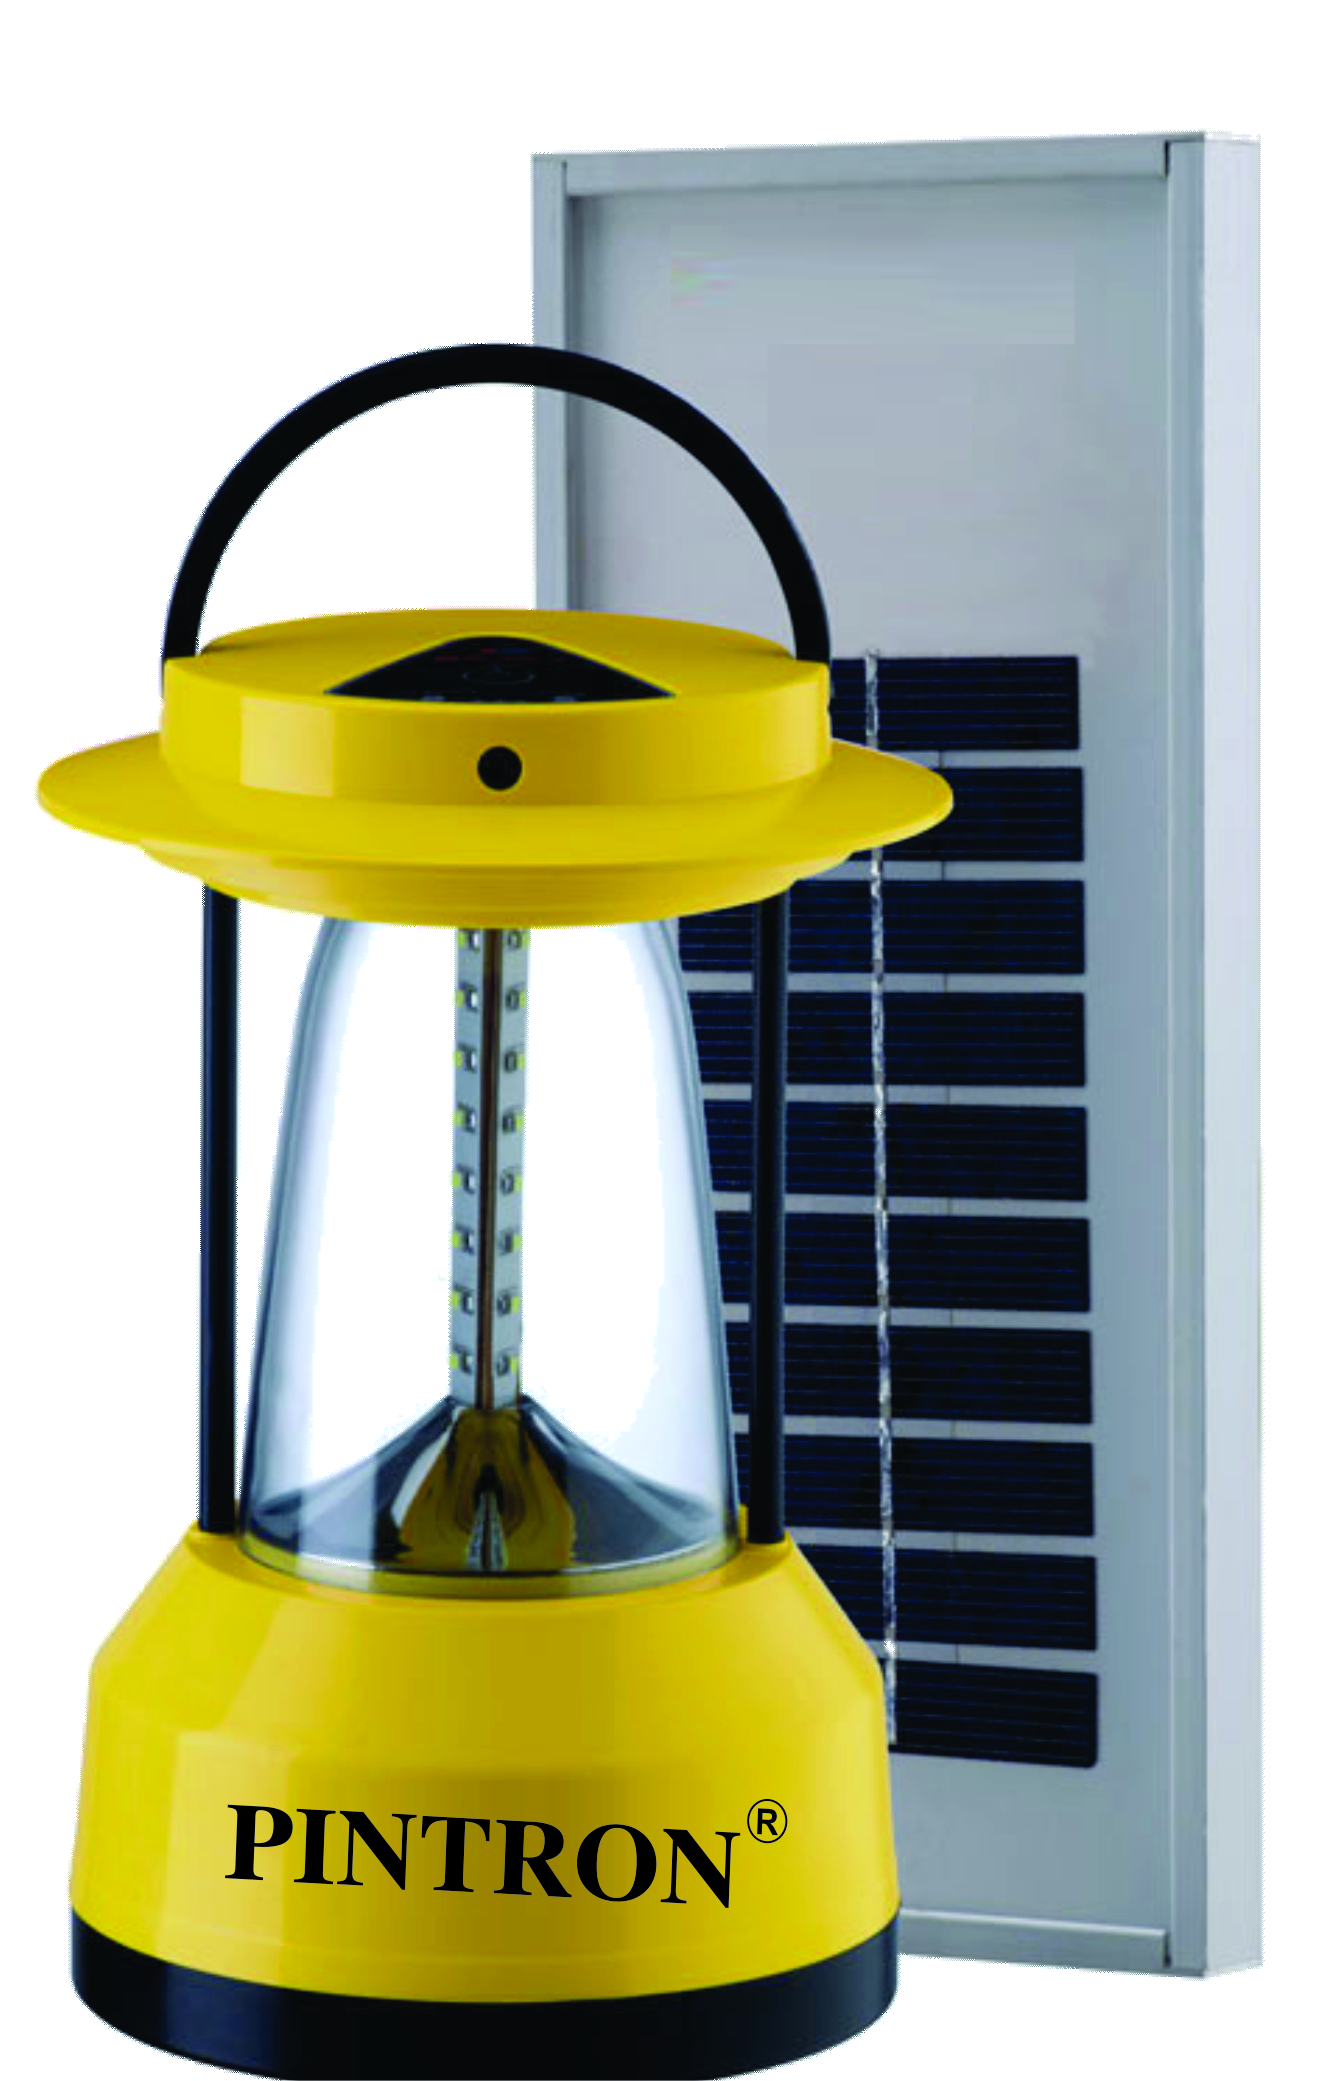 Pintron Lantern Solar Emergency Light